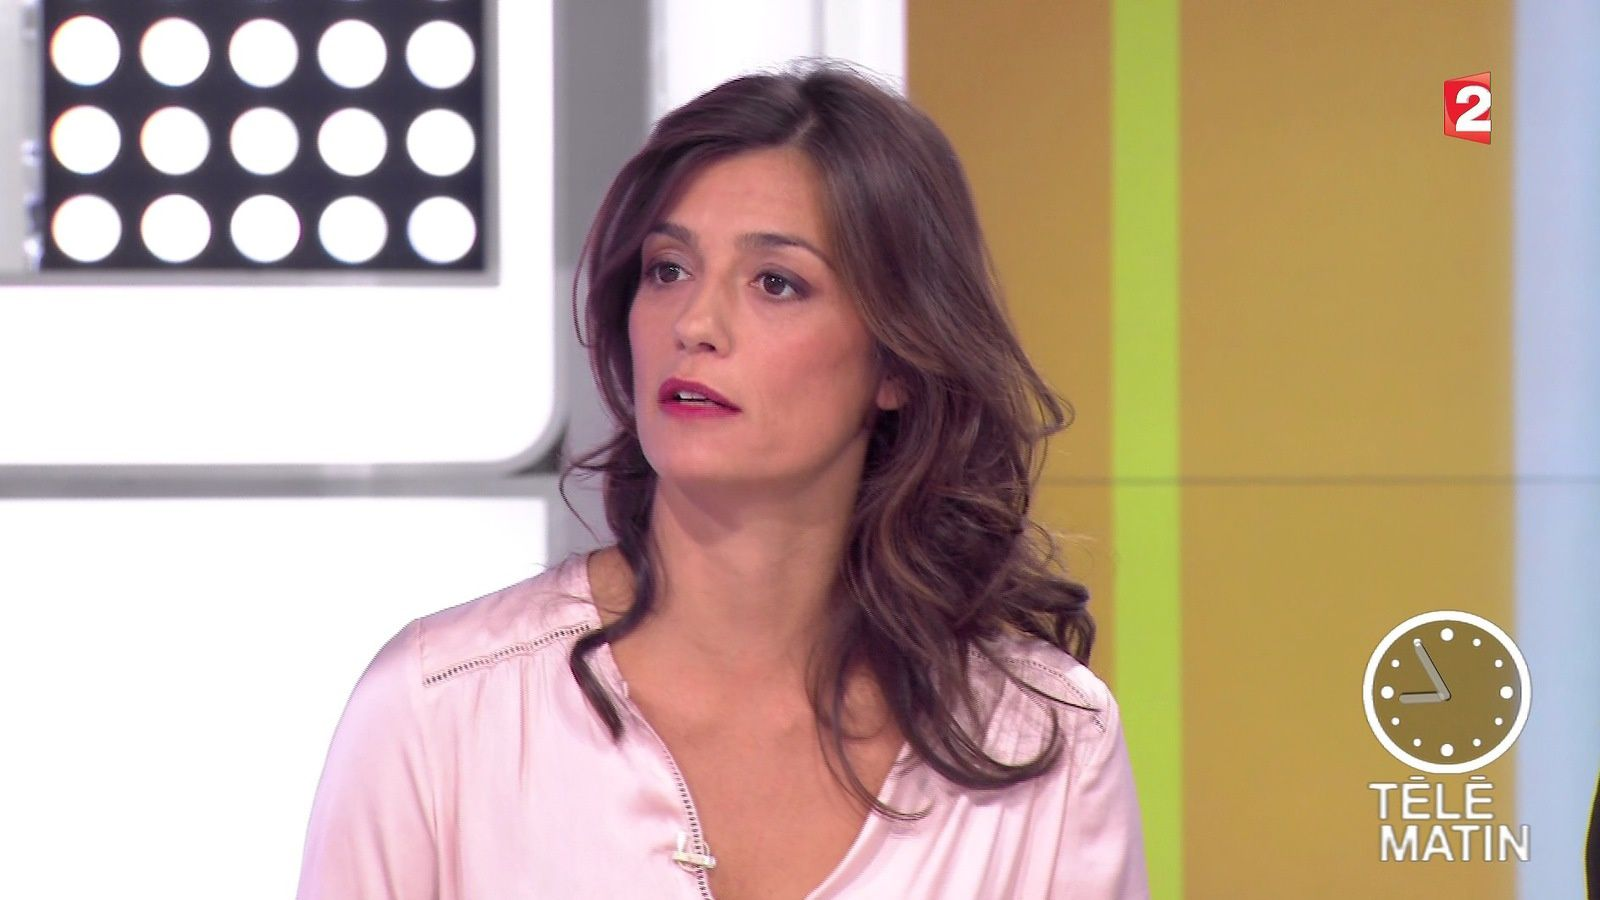 Tania young dans telematin le 2016 04 15 sur france 2 for Telematin cuisine france 2